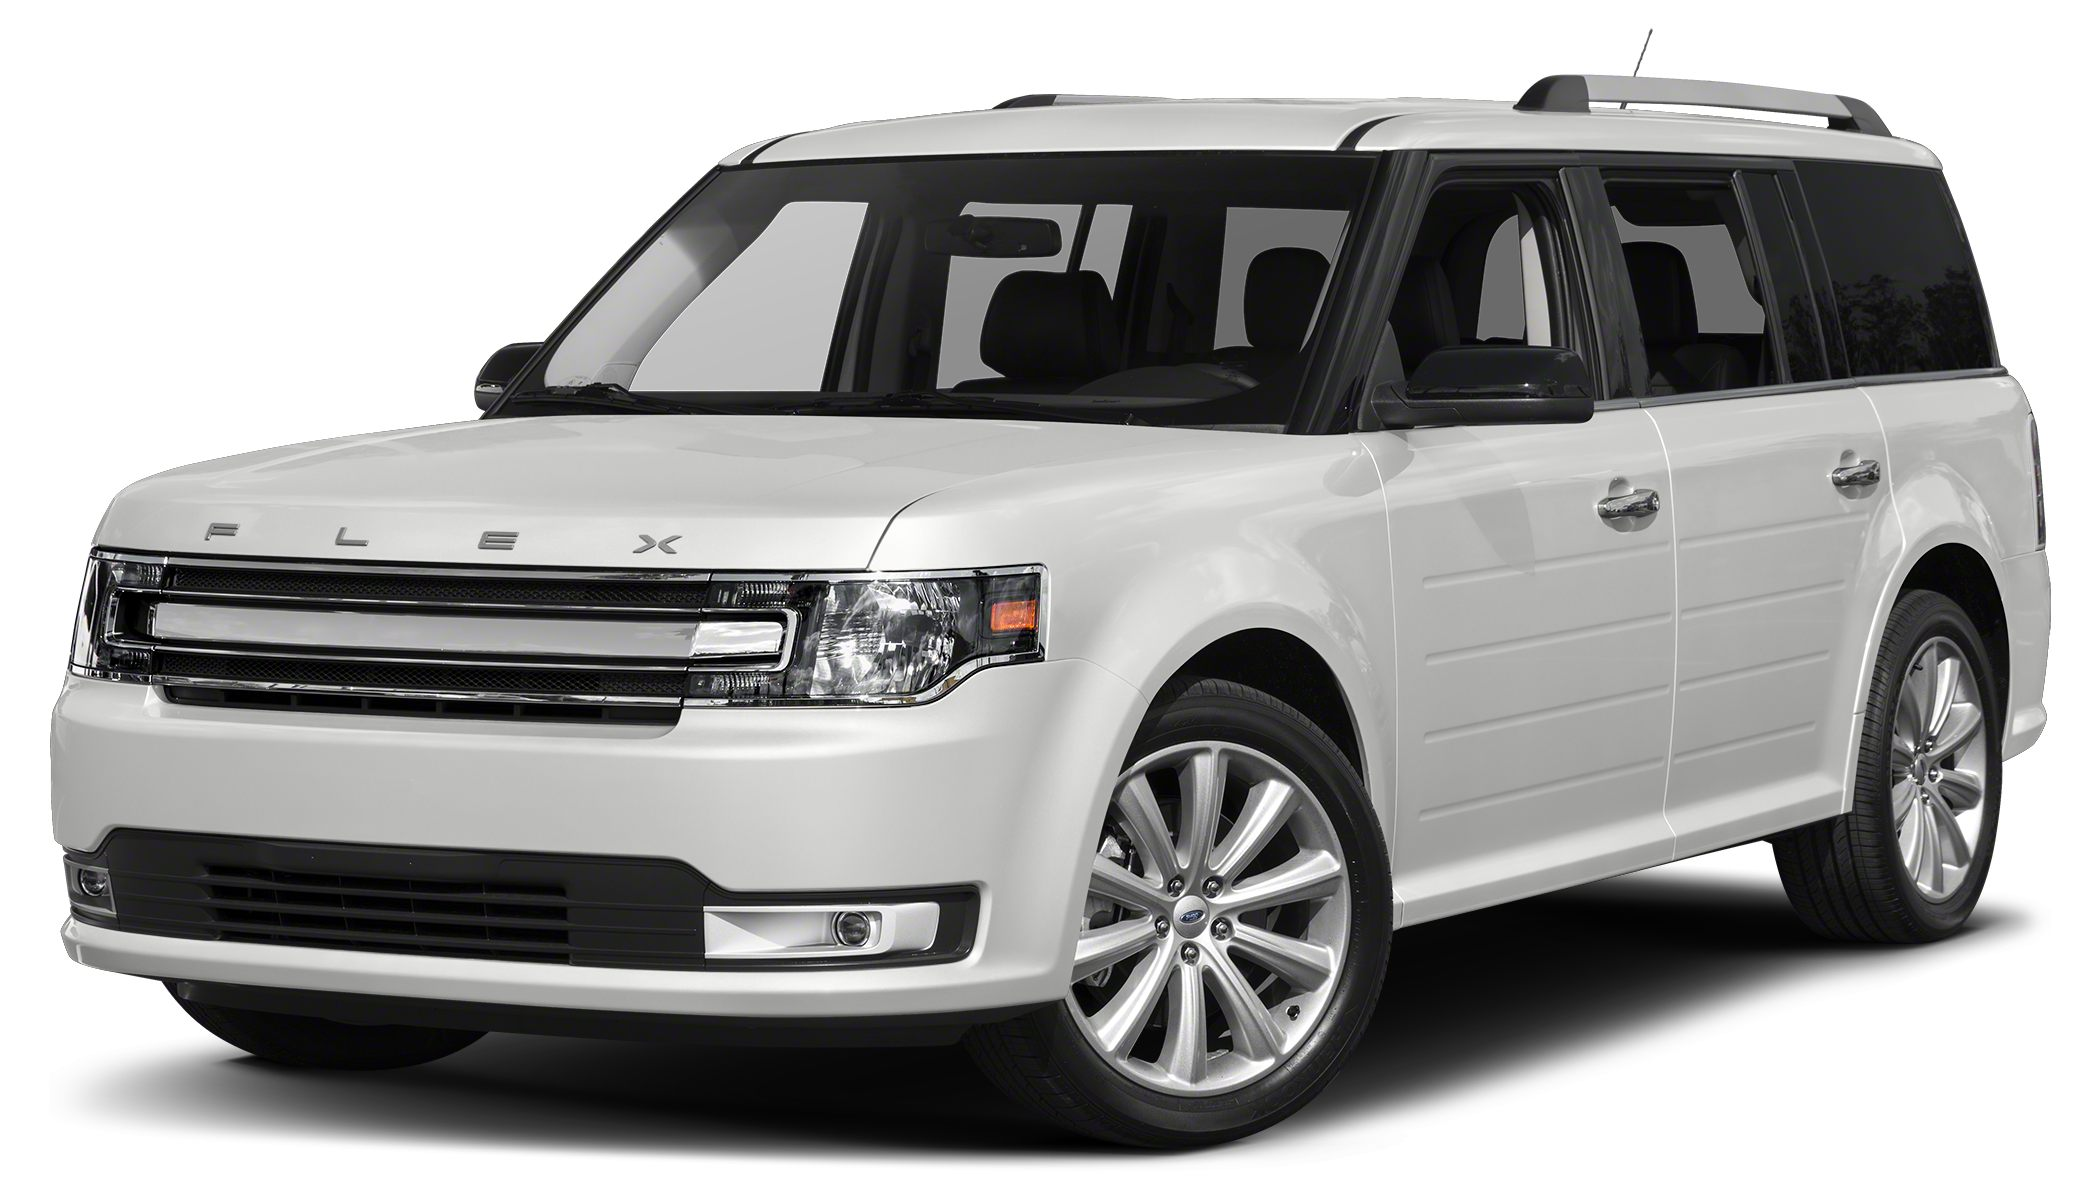 2017 Ford Flex Limited 2017 Ford Flex Limited EcoBoost 35L V6 GTDi DOHC 24V Twin Turbocharged AW